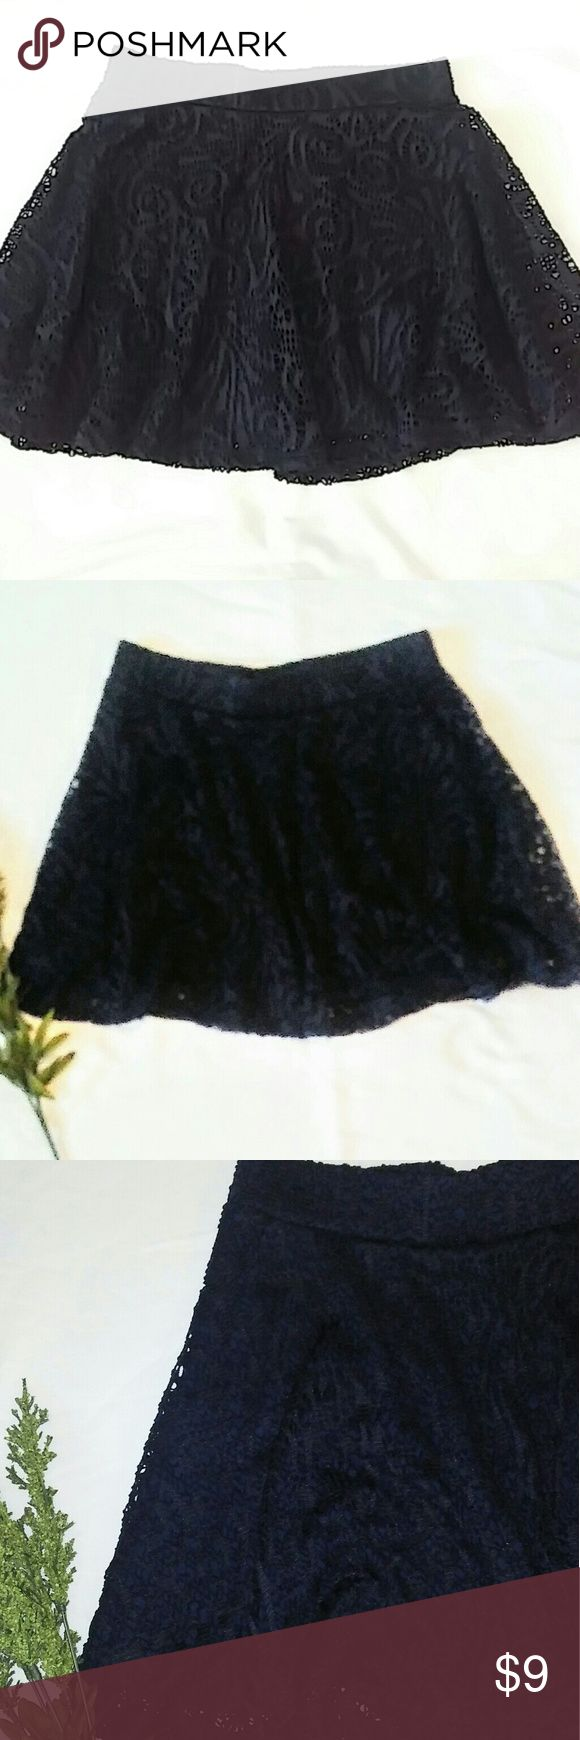 "🌟New LIsting🌟 Aeropostale mini skirt (sm) EUC❤ Cute flare mini skirt with fun crochet look and lined inside. Measurements laid flat waist 13"" L 15"" navy blue color Aeropostale Skirts Mini"